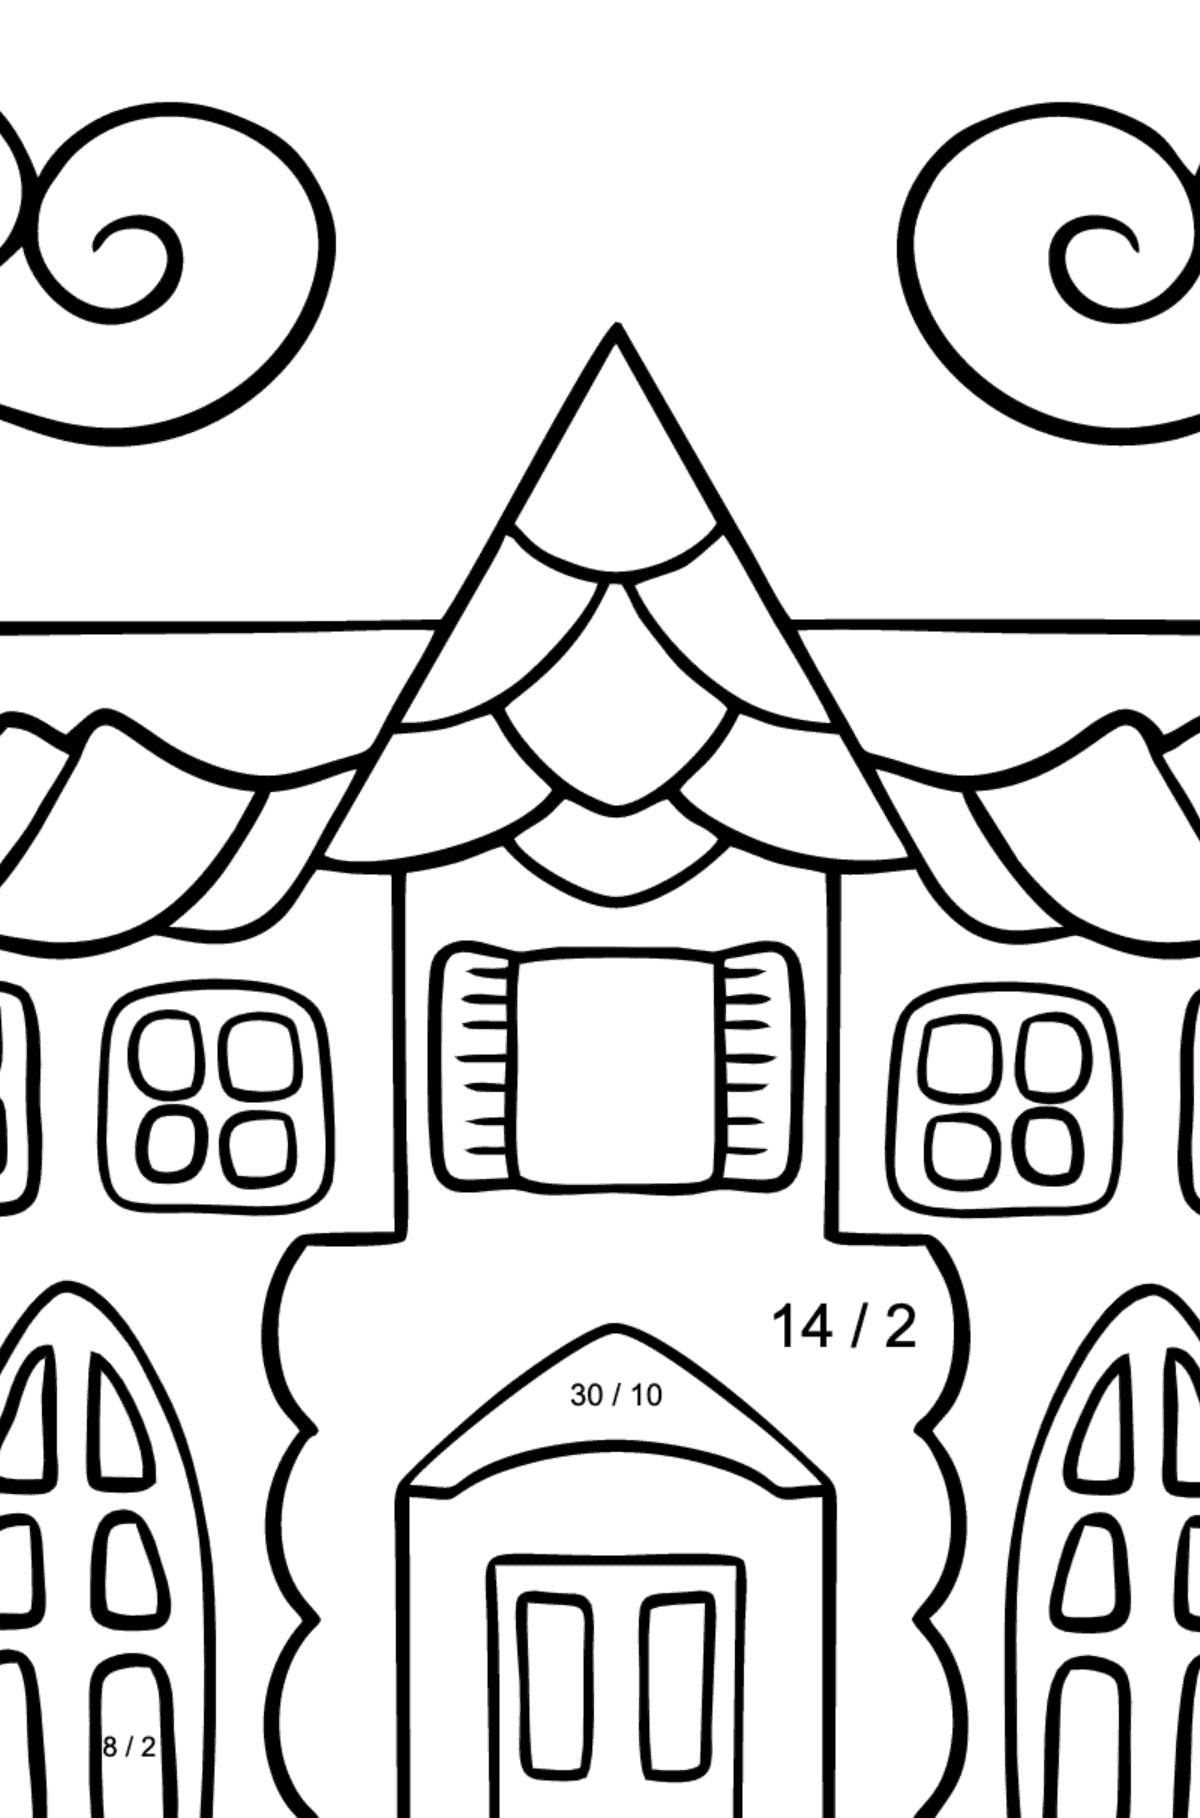 Simple Coloring Page - A House in an Enchanted Kingdom for Kids  - Color by Number Division